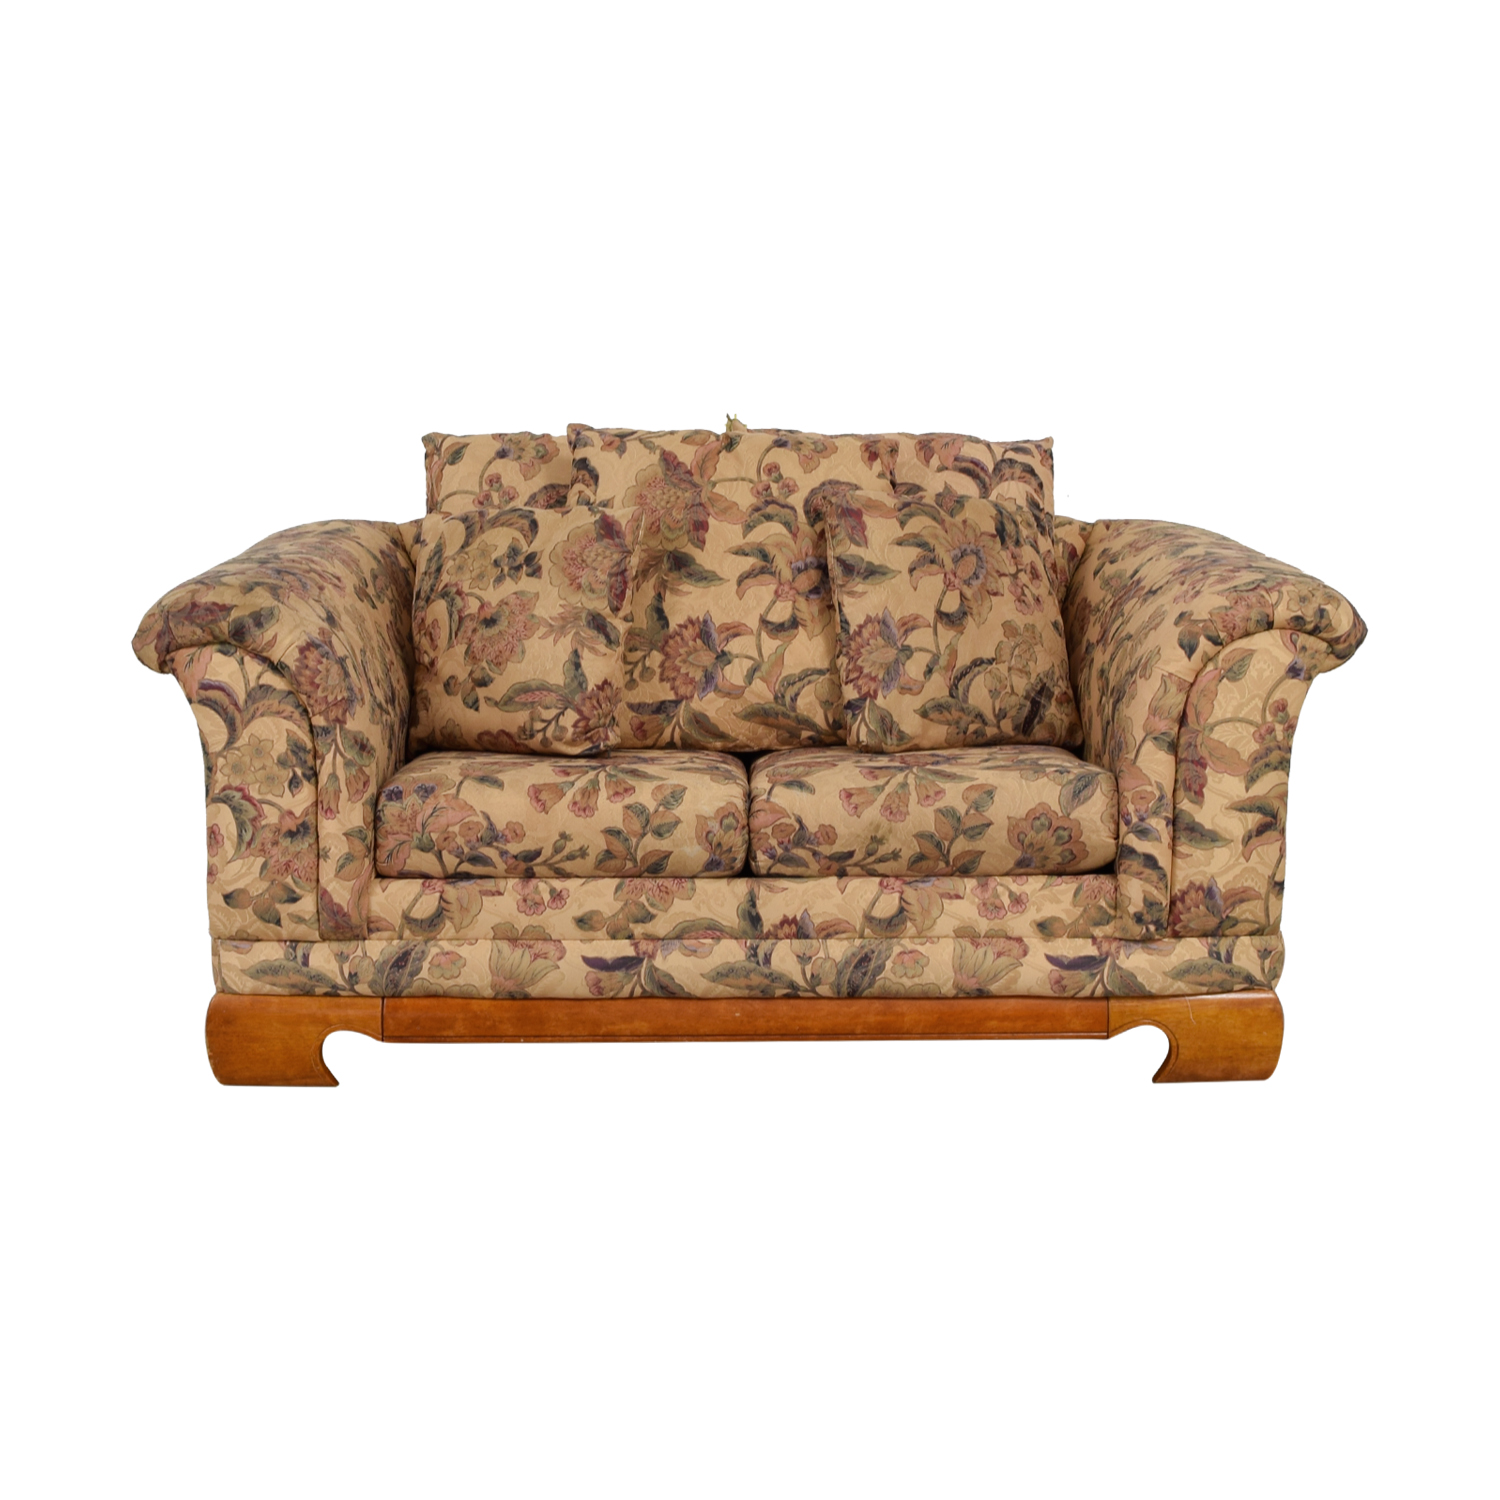 buy Sealy Furniture Floral Two-Cushion Loveseat Sealy Furniture